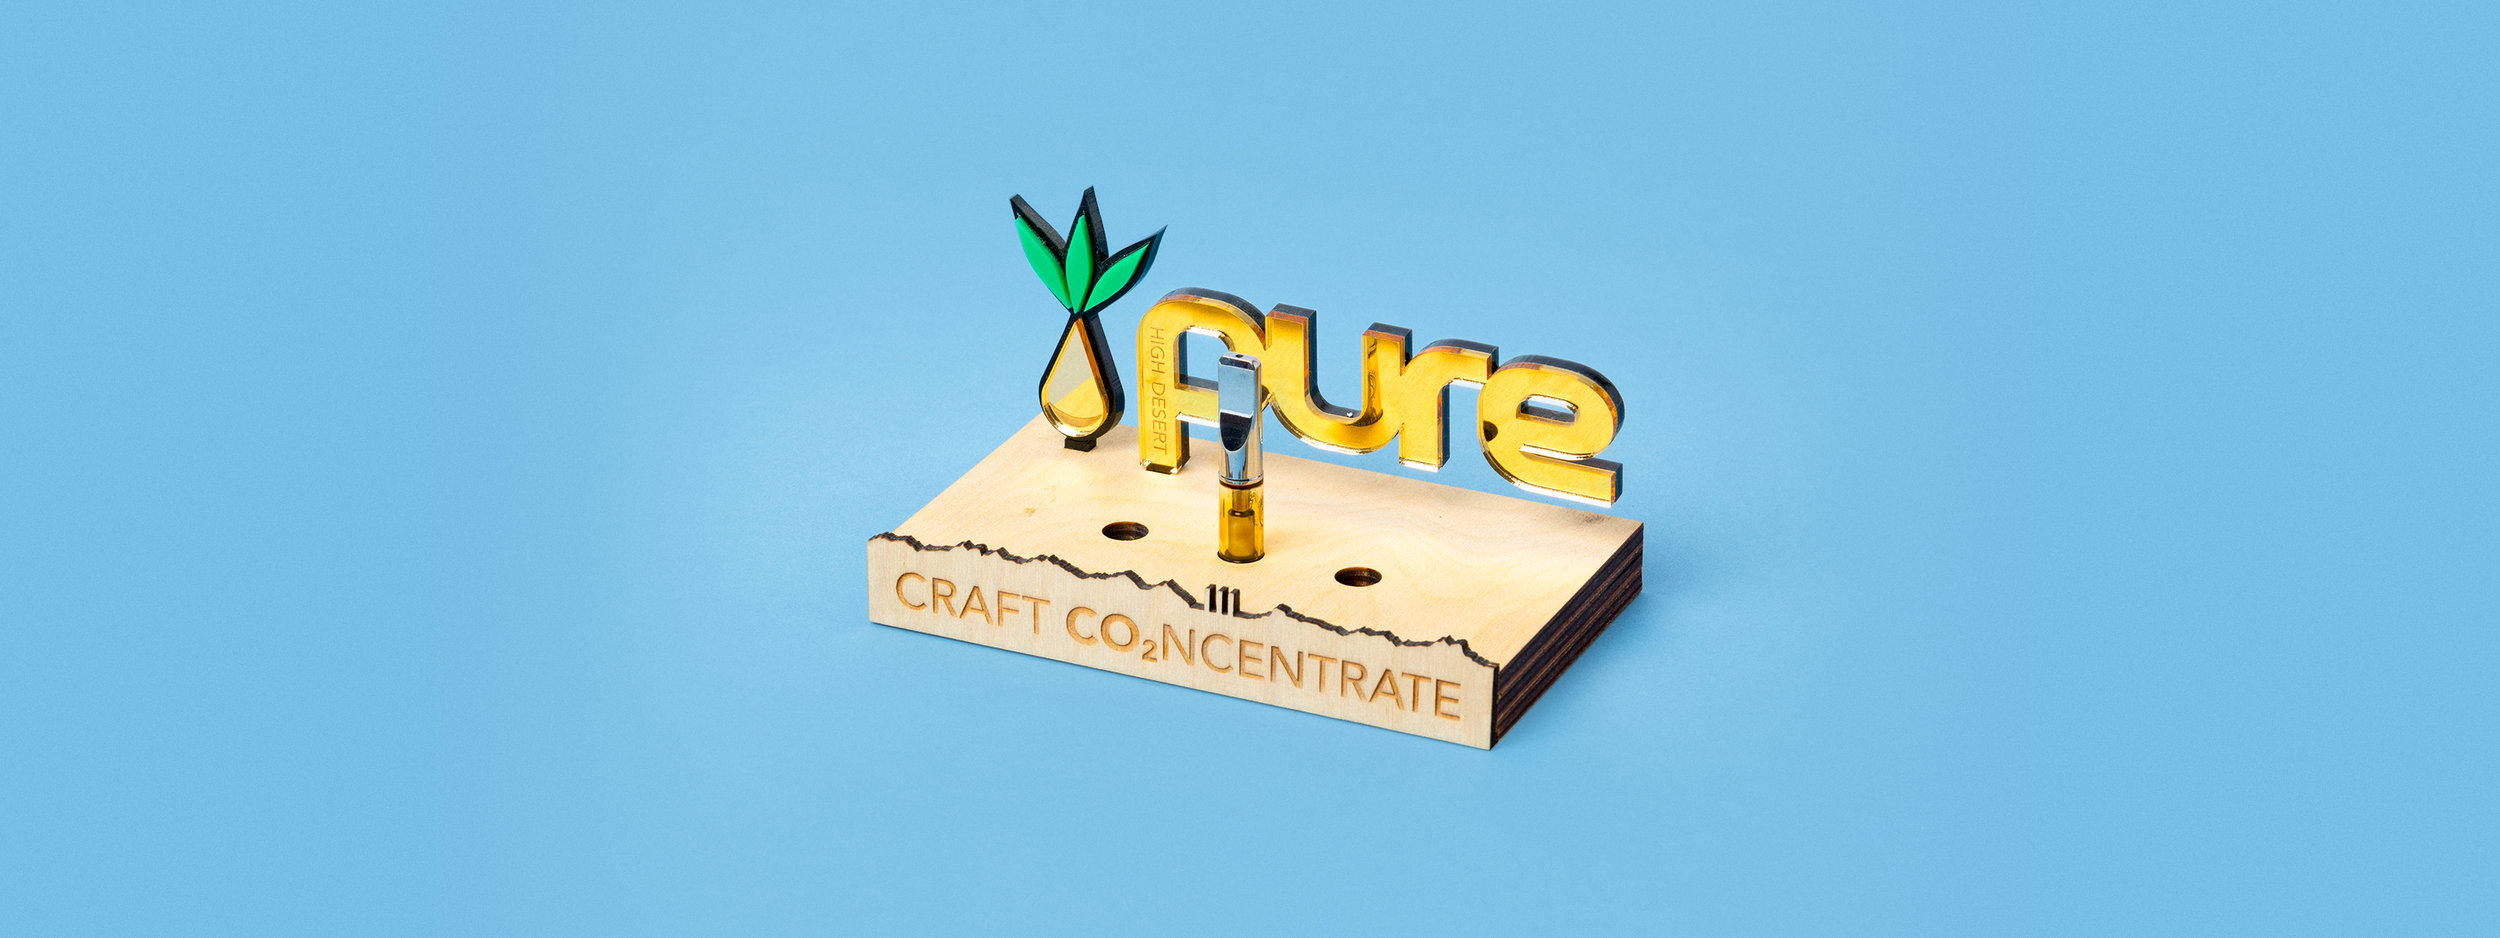 in-store display, POP, concentrate display, laser cut acrylic, laser cut wood, POS display